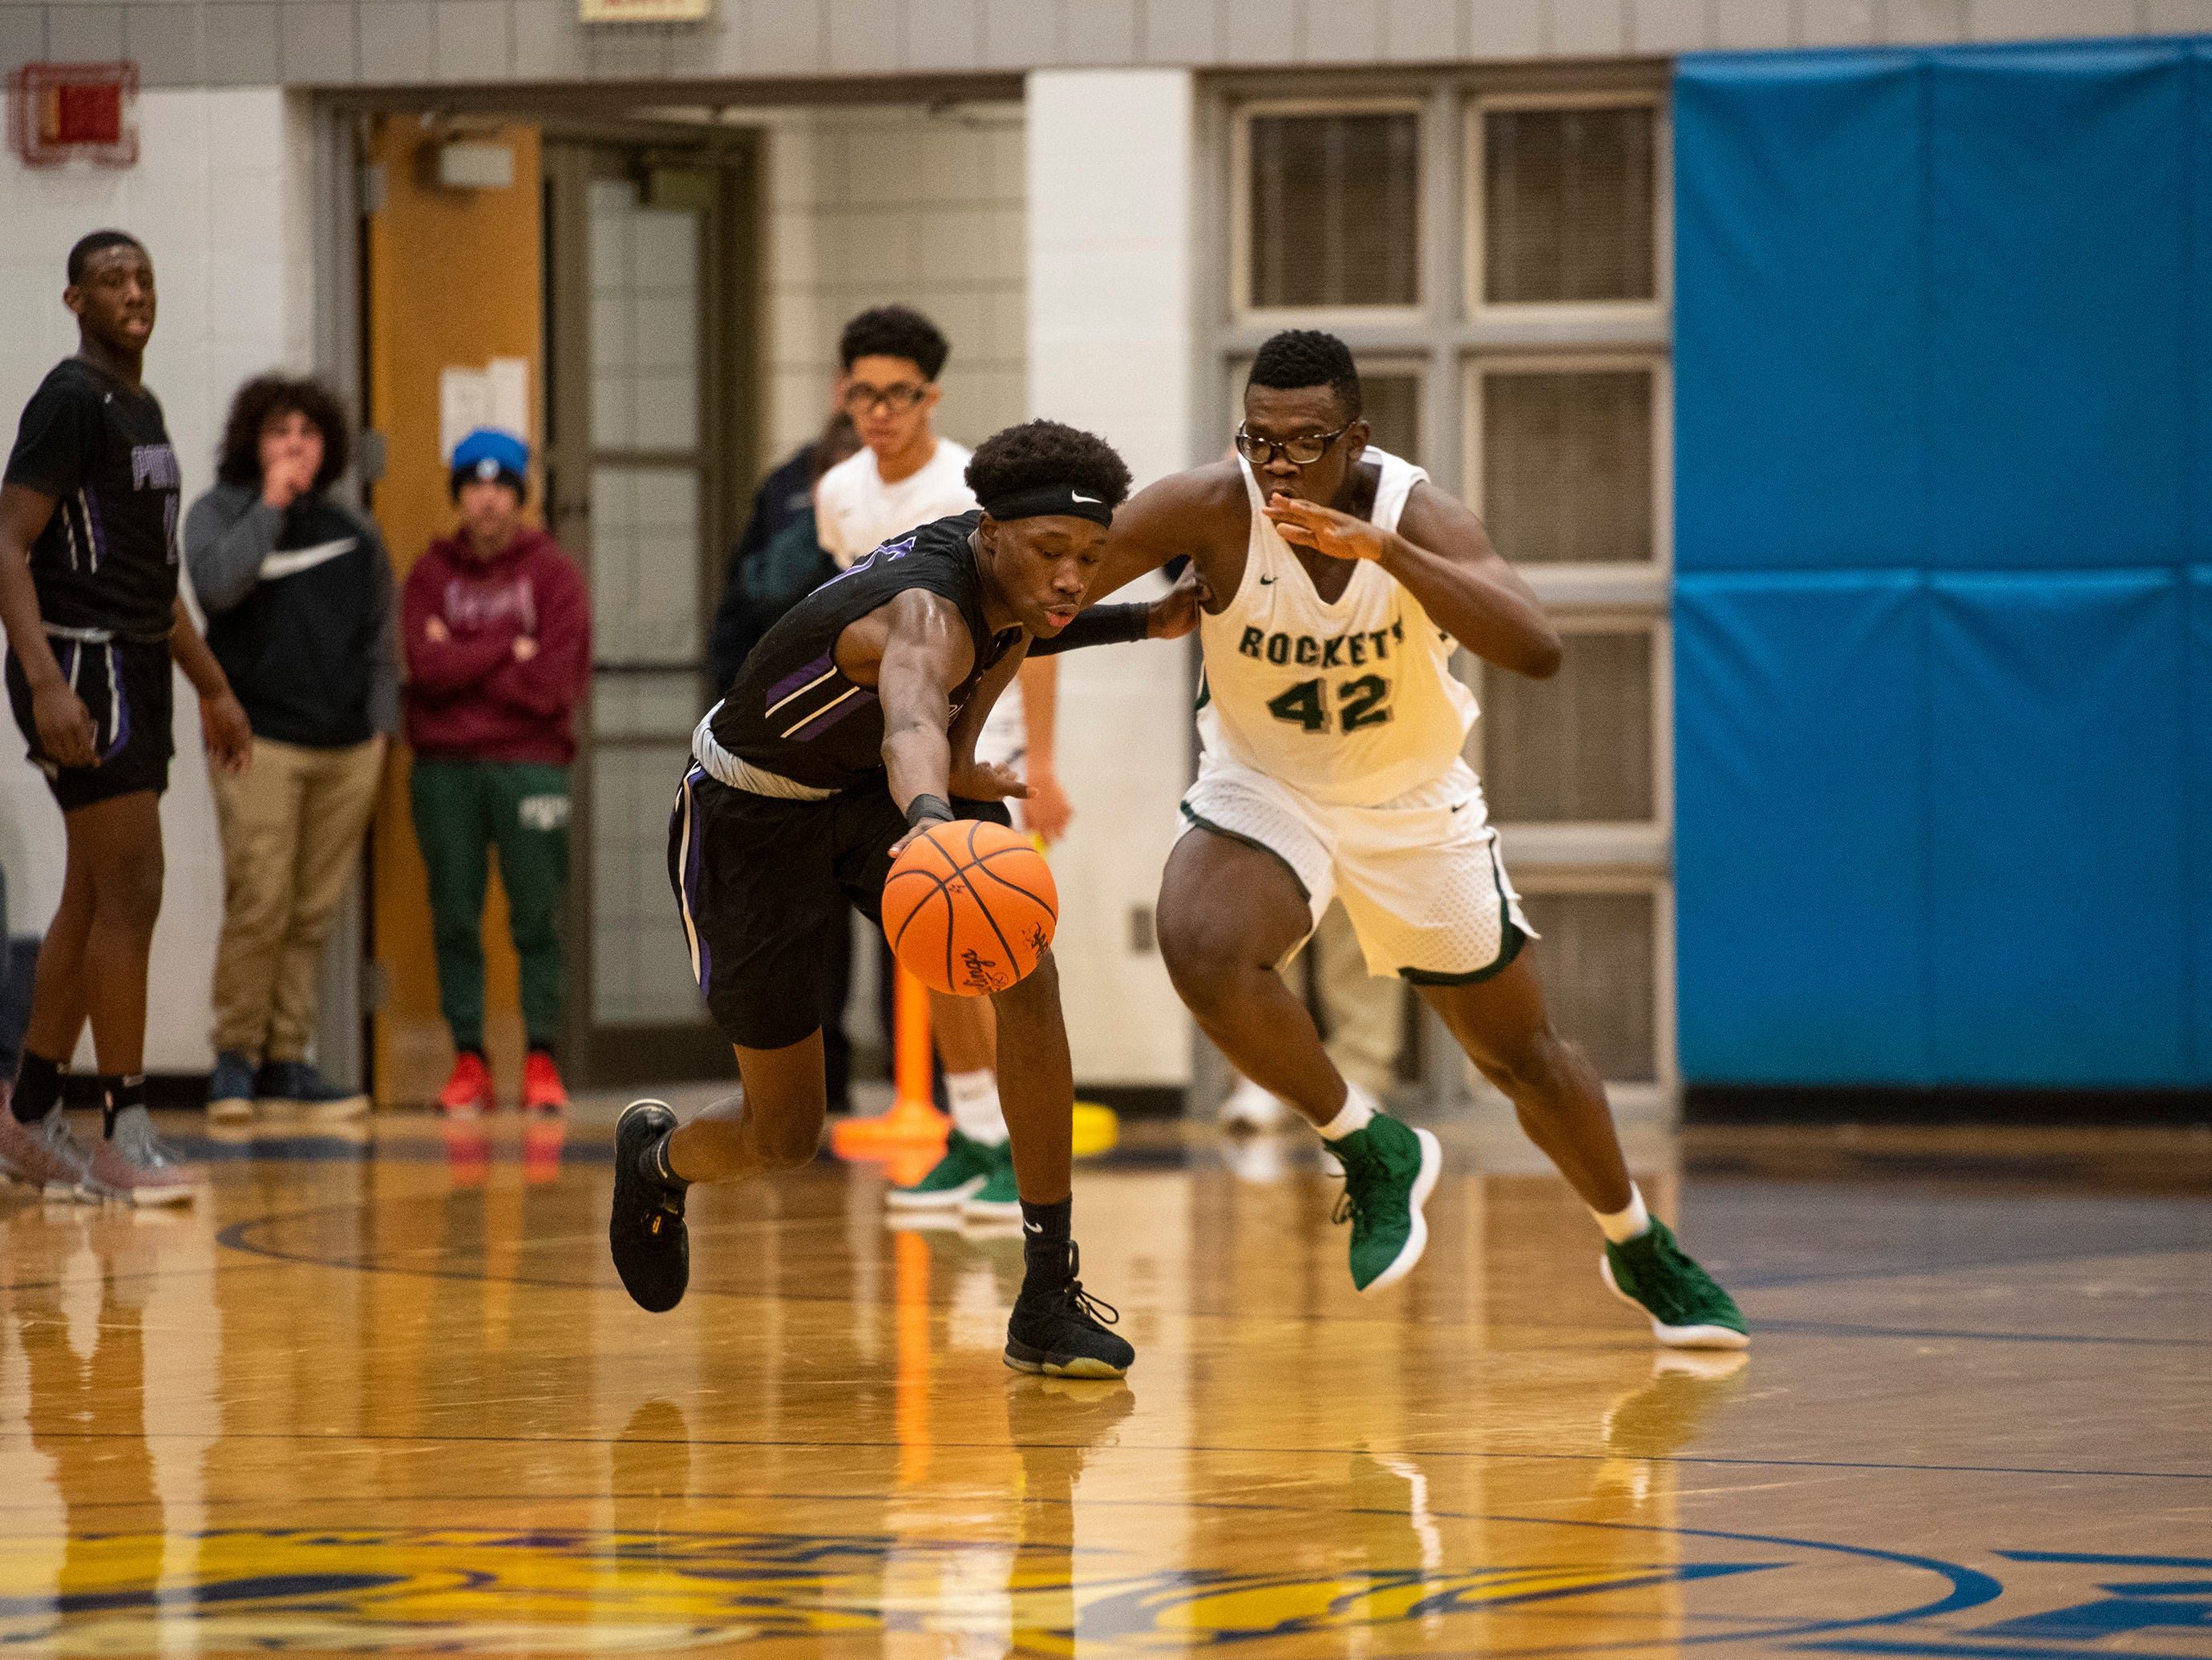 New Haven's Malen Lewis (42) and Pontiac's Dominique Stovall chase a loose ball in the MHSAA Division 2 regional basketball finals Thursday, March 7, 2019 at Imlay City High School.